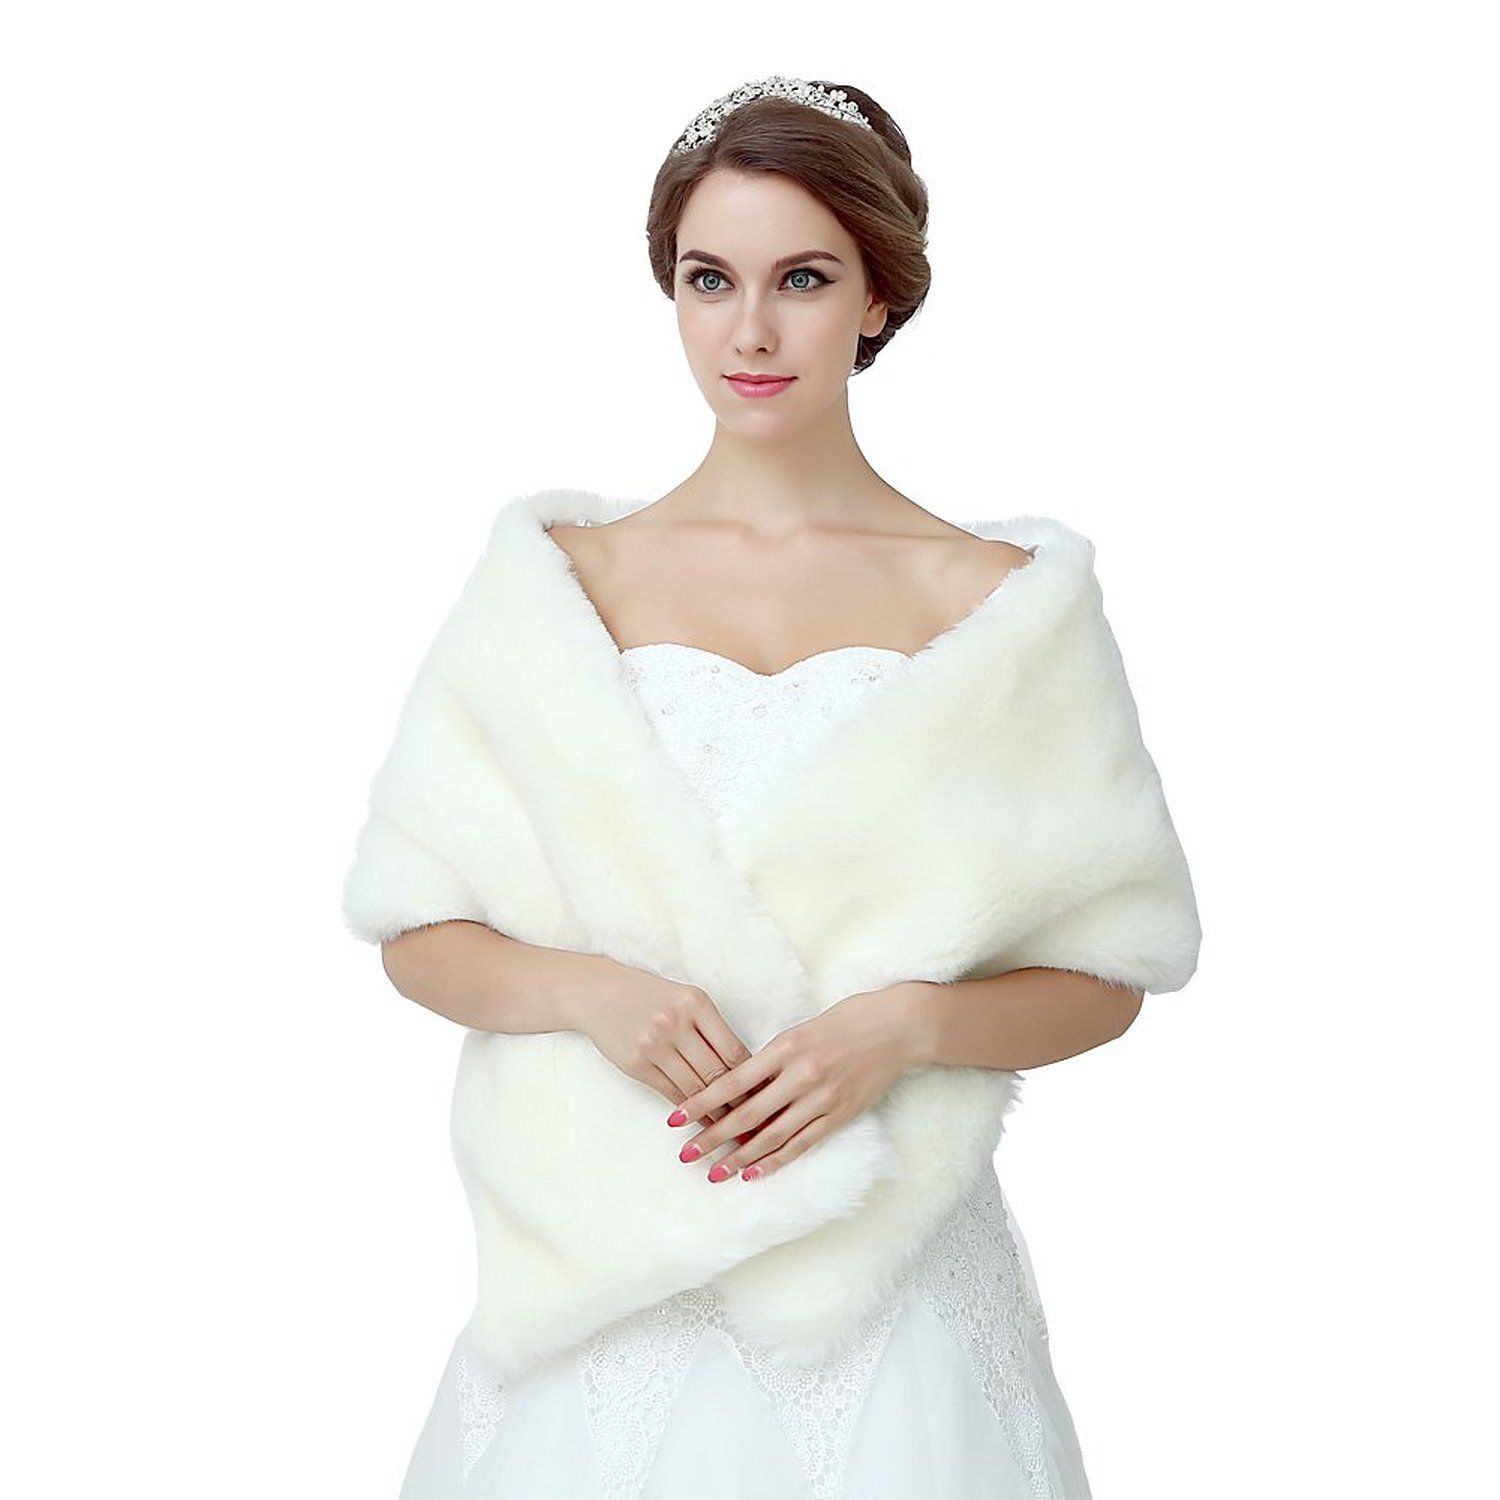 1940s Style Wedding Dresses | Classic Wedding Dresses Diyouth Ivory Shawl Wrap Faux Fur Scarf Stoles for Wedding Dresses $17.99 AT vintagedancer.com